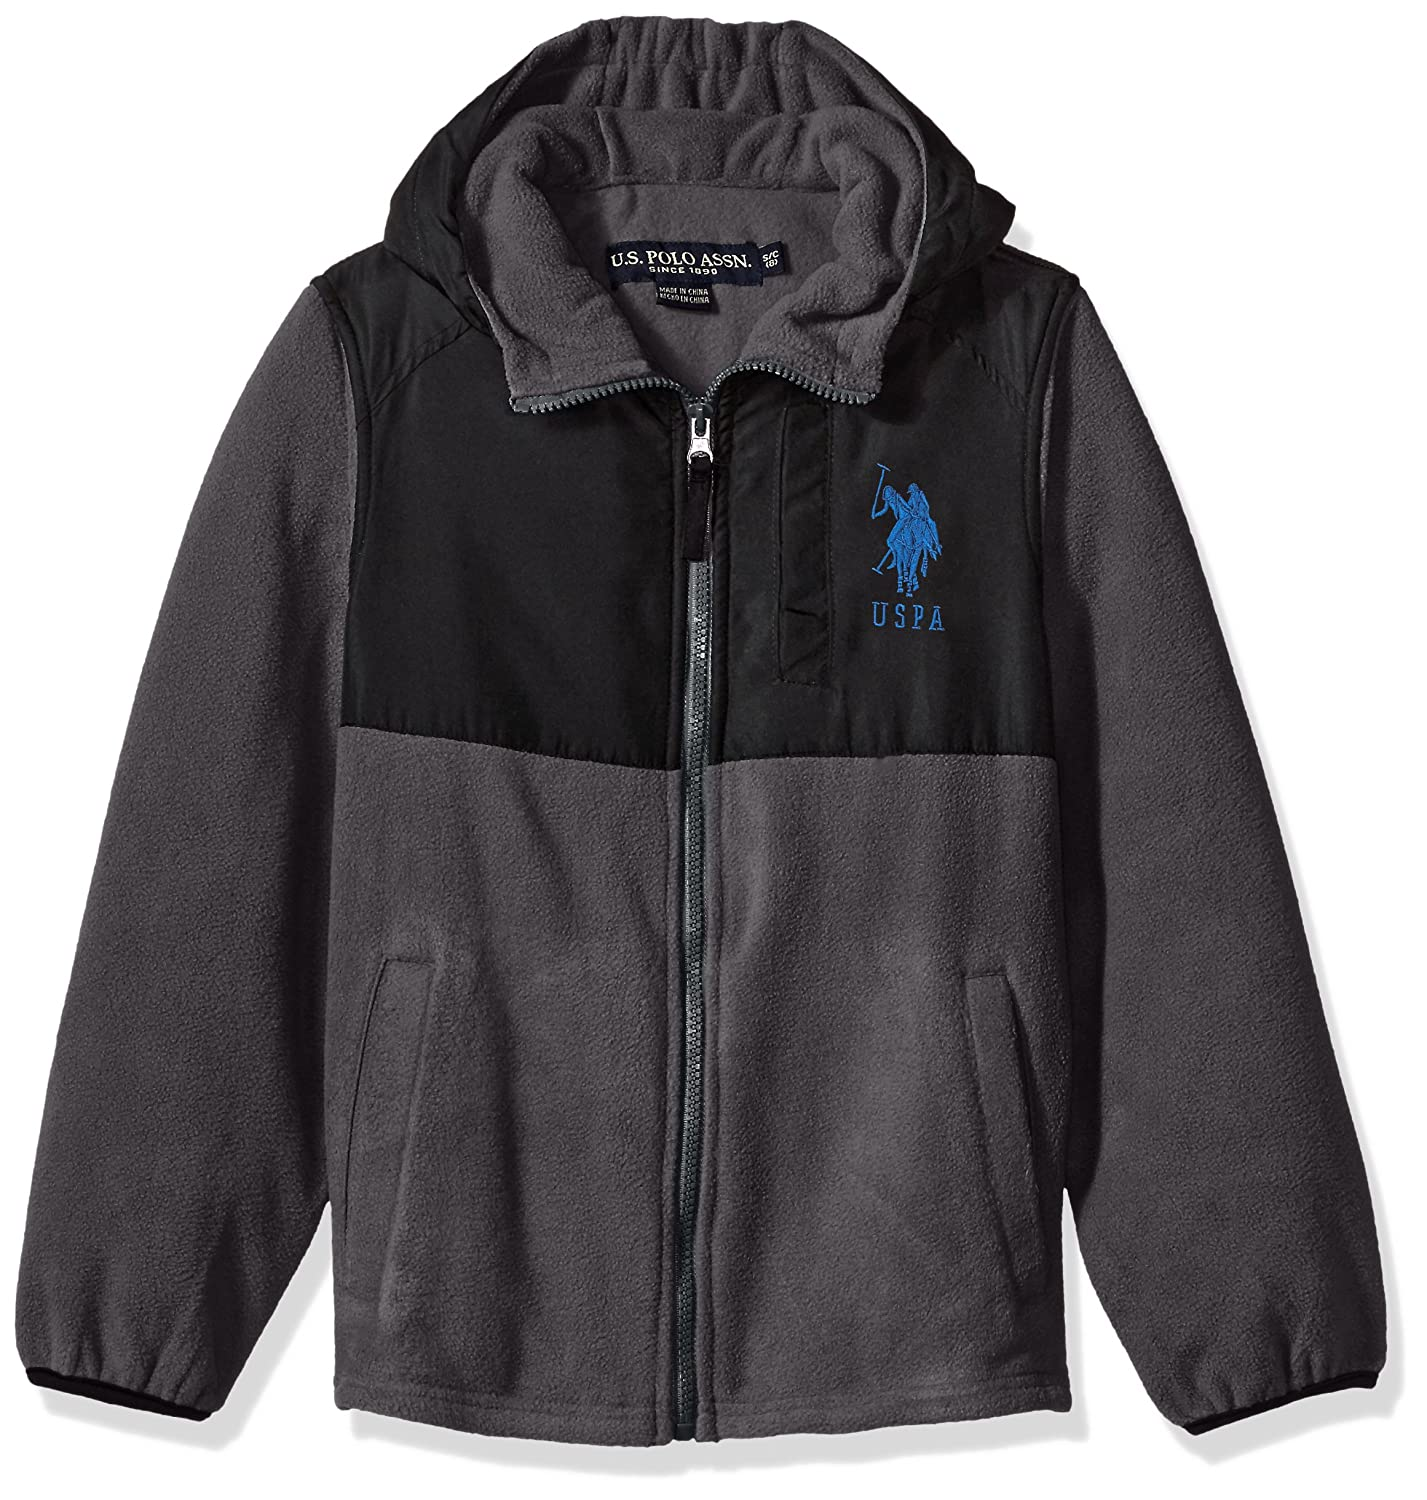 U.S. Polo Assn. Big Boys' Outerwear Jacket (More Styles Available) US Polo Association OBUB99H